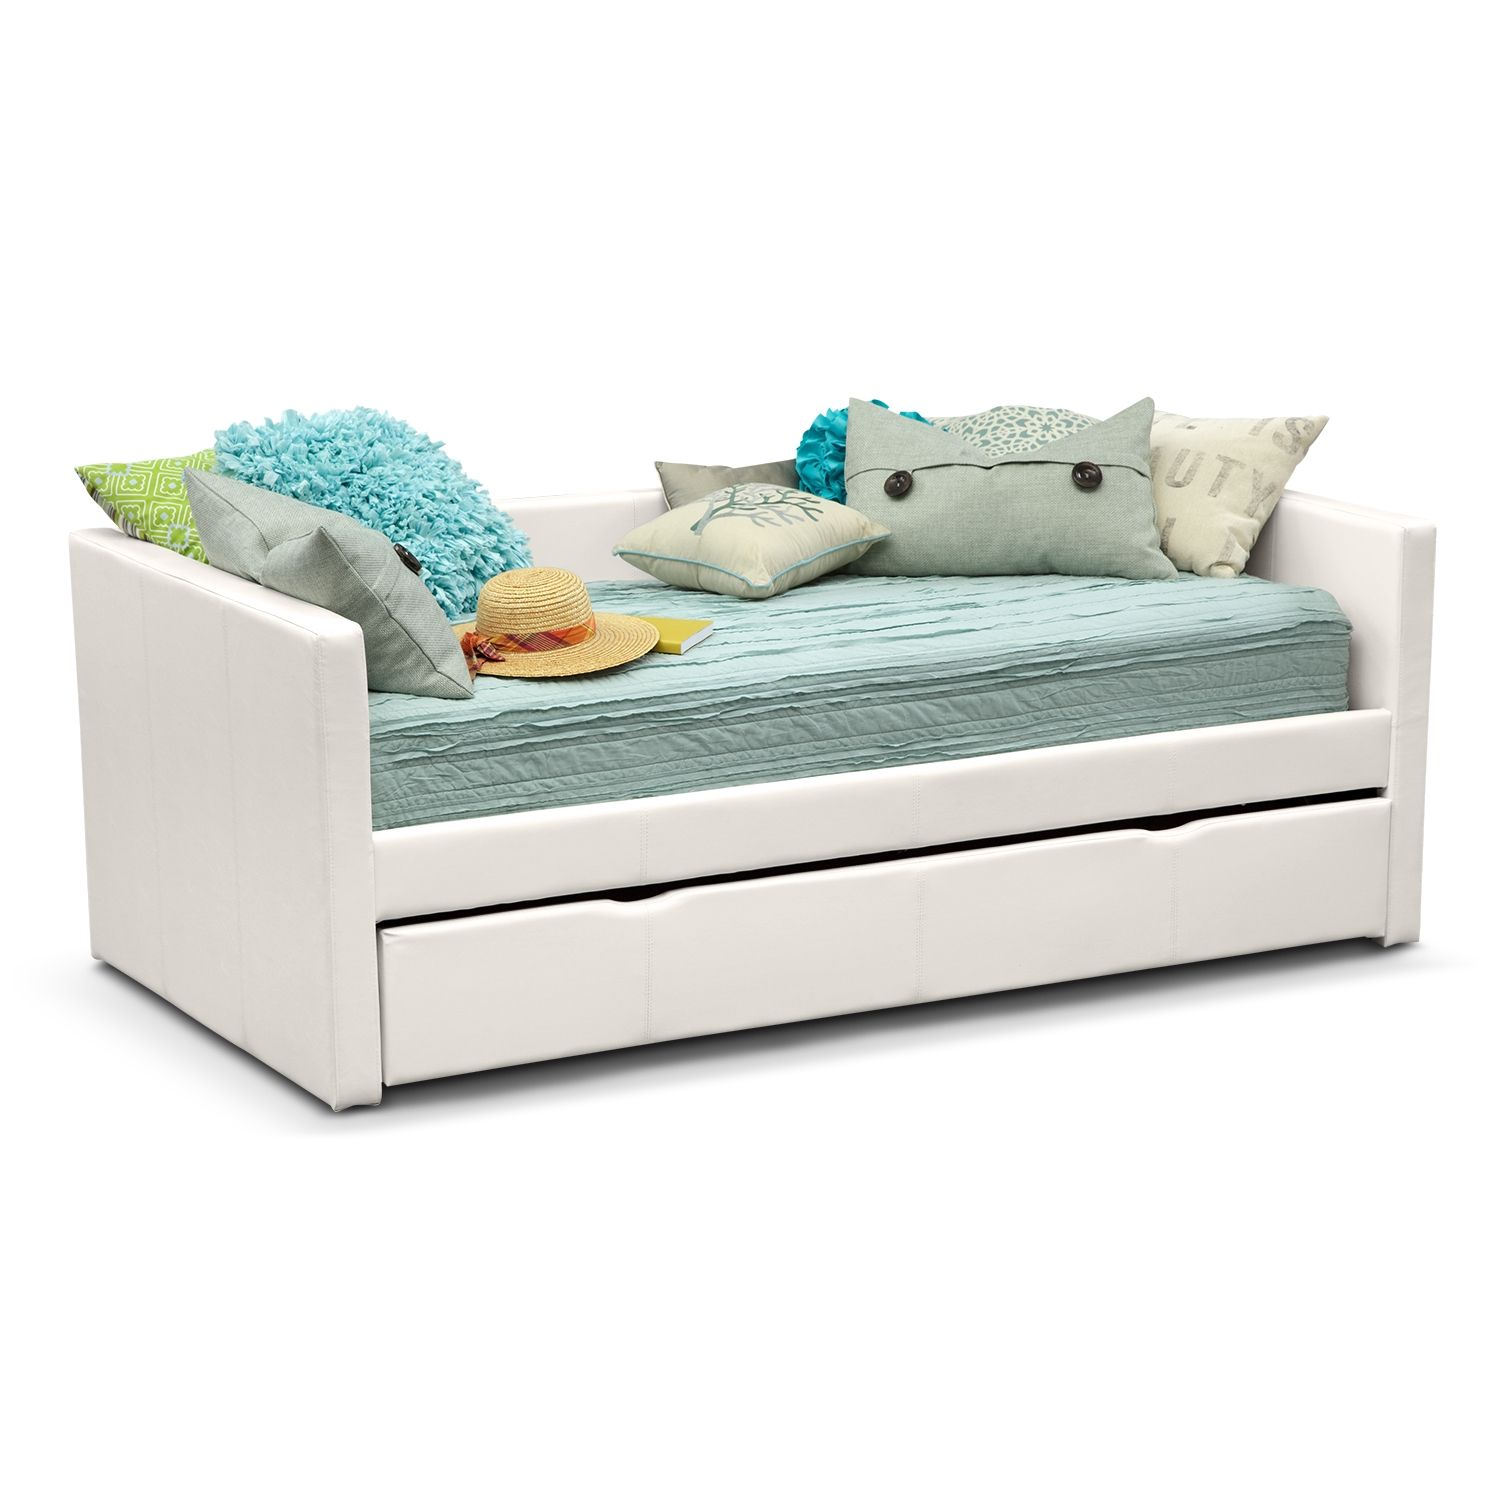 Darby Kids Furniture Twin Daybed With Trundle